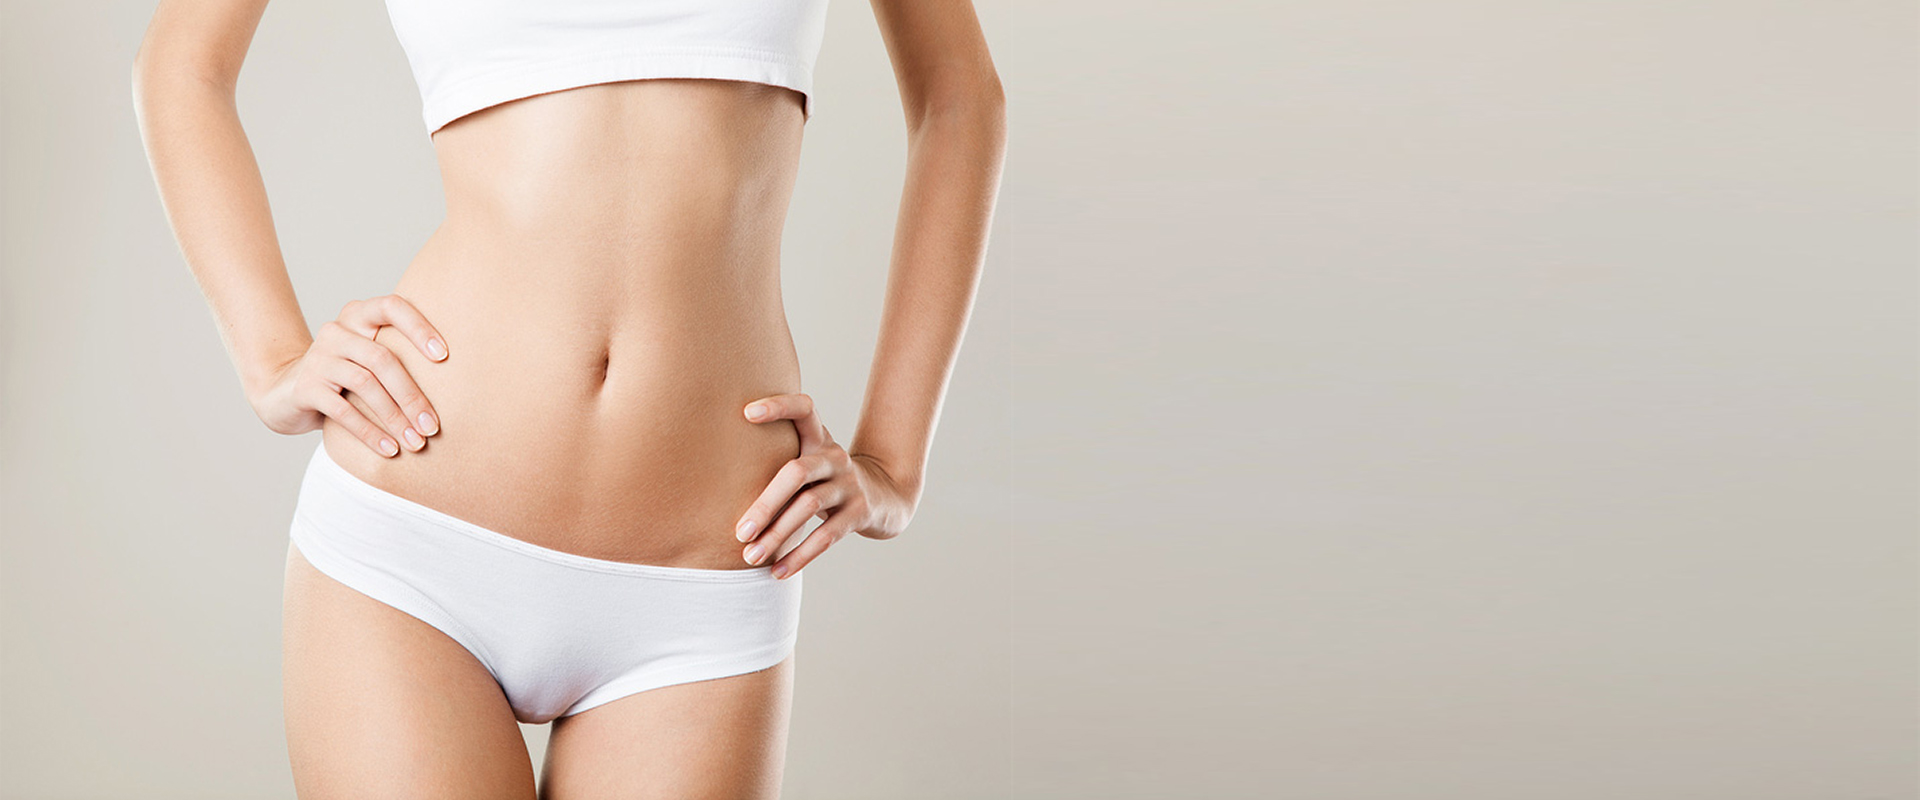 Liposuction advantages and disadavantage